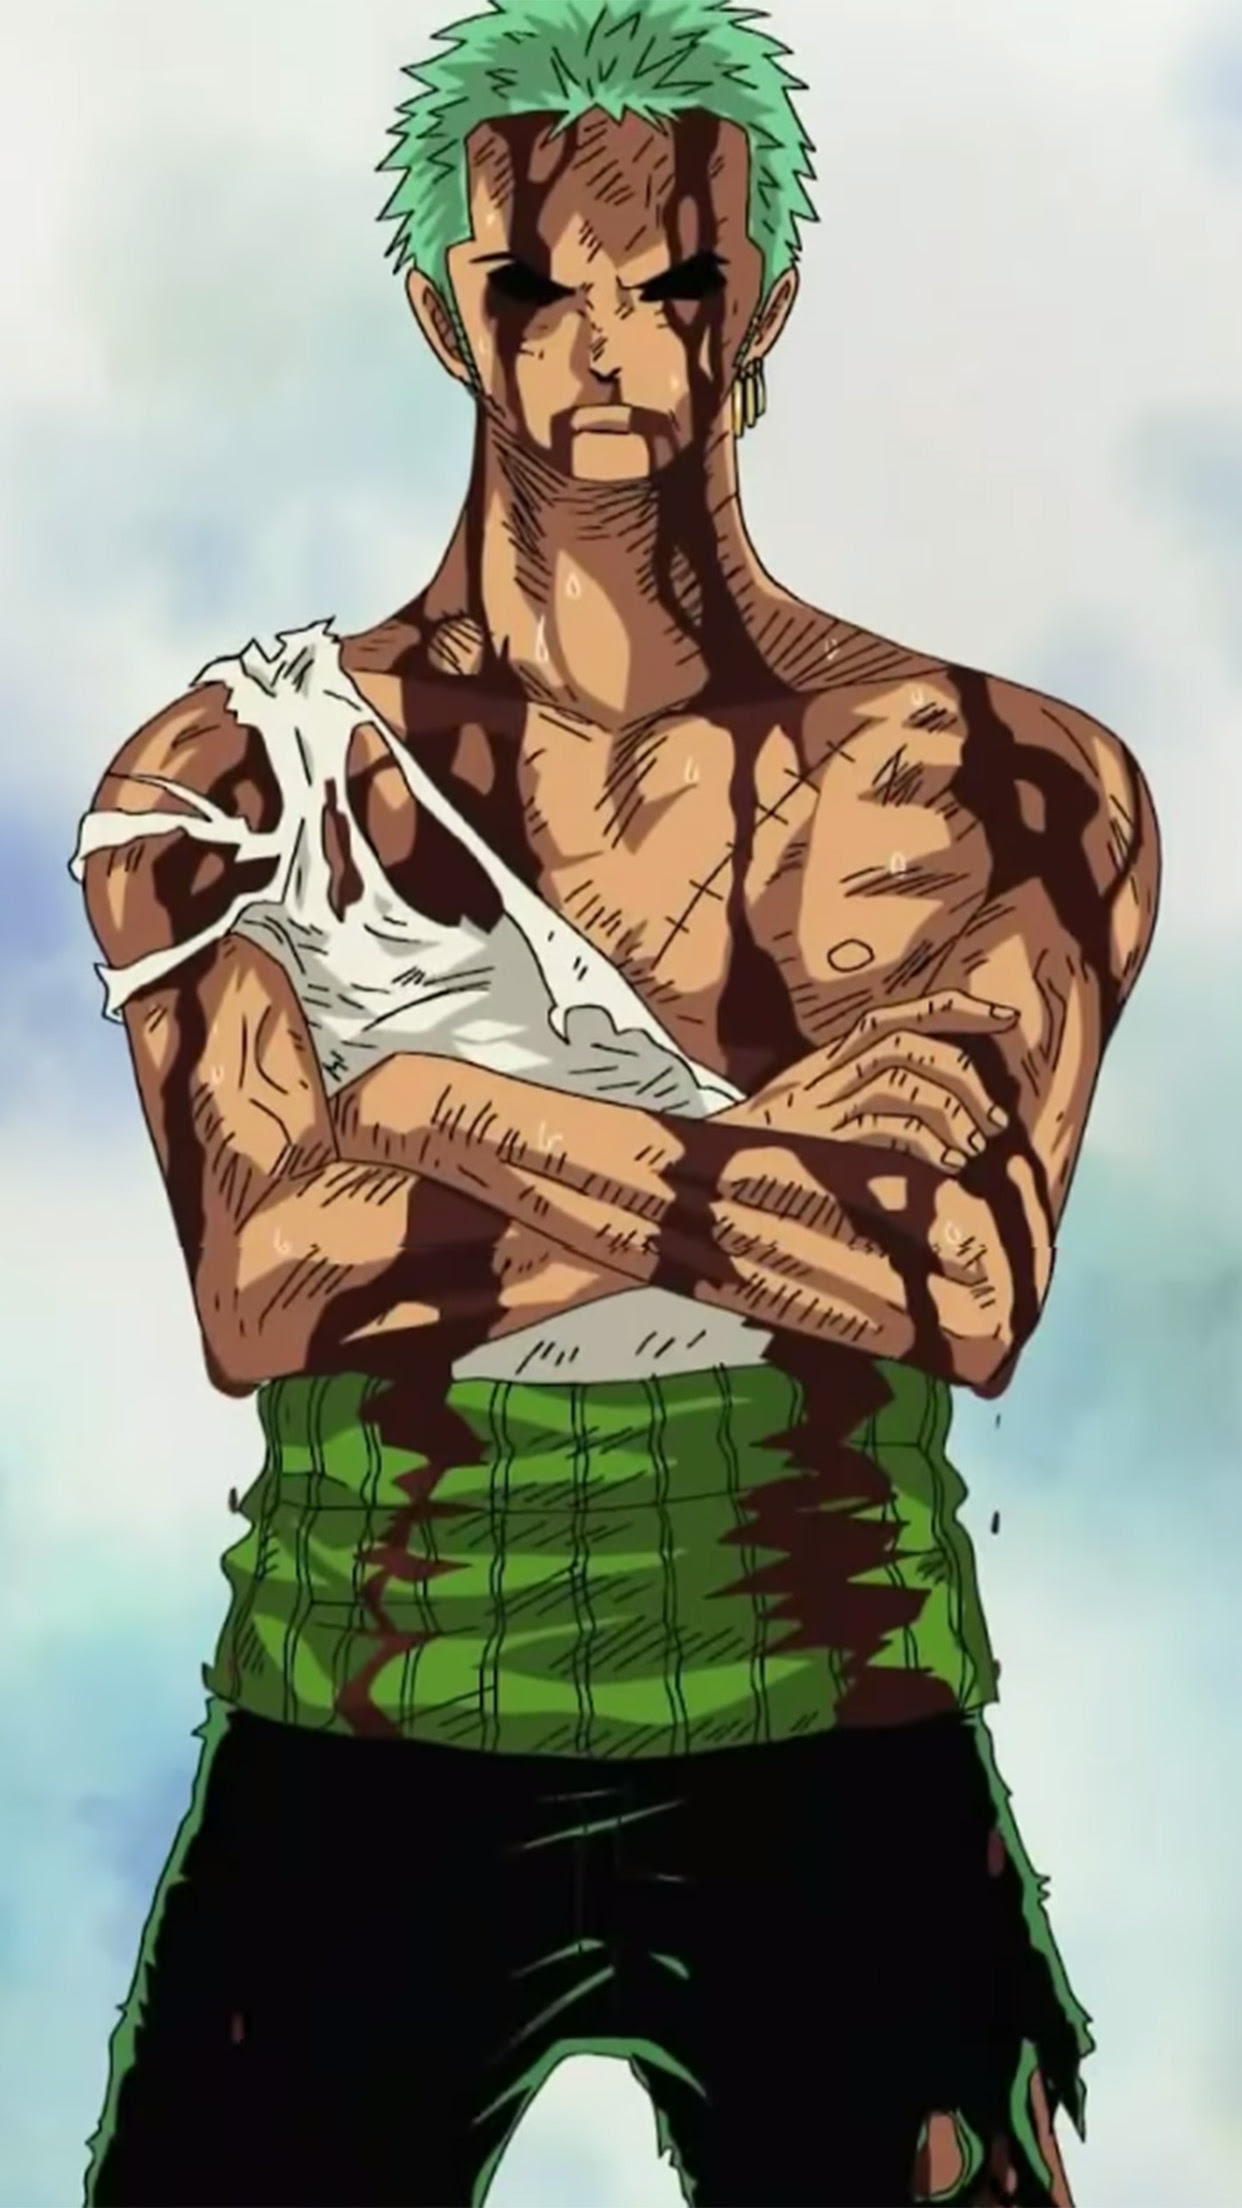 Roronoa Zoro Wallpaper For Iphone X 8 7 6 Free Download On